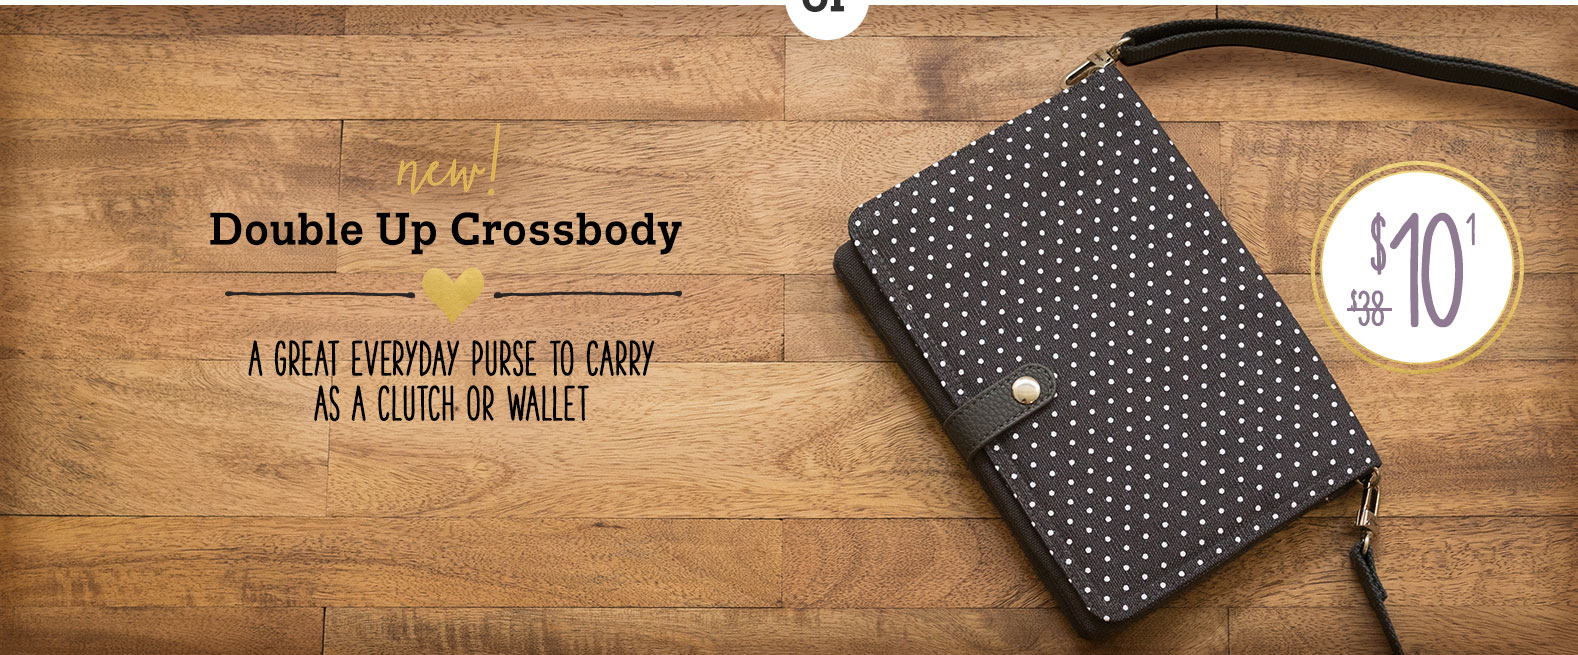 Double Up Crossbody in City Charcoal Swiss Dot